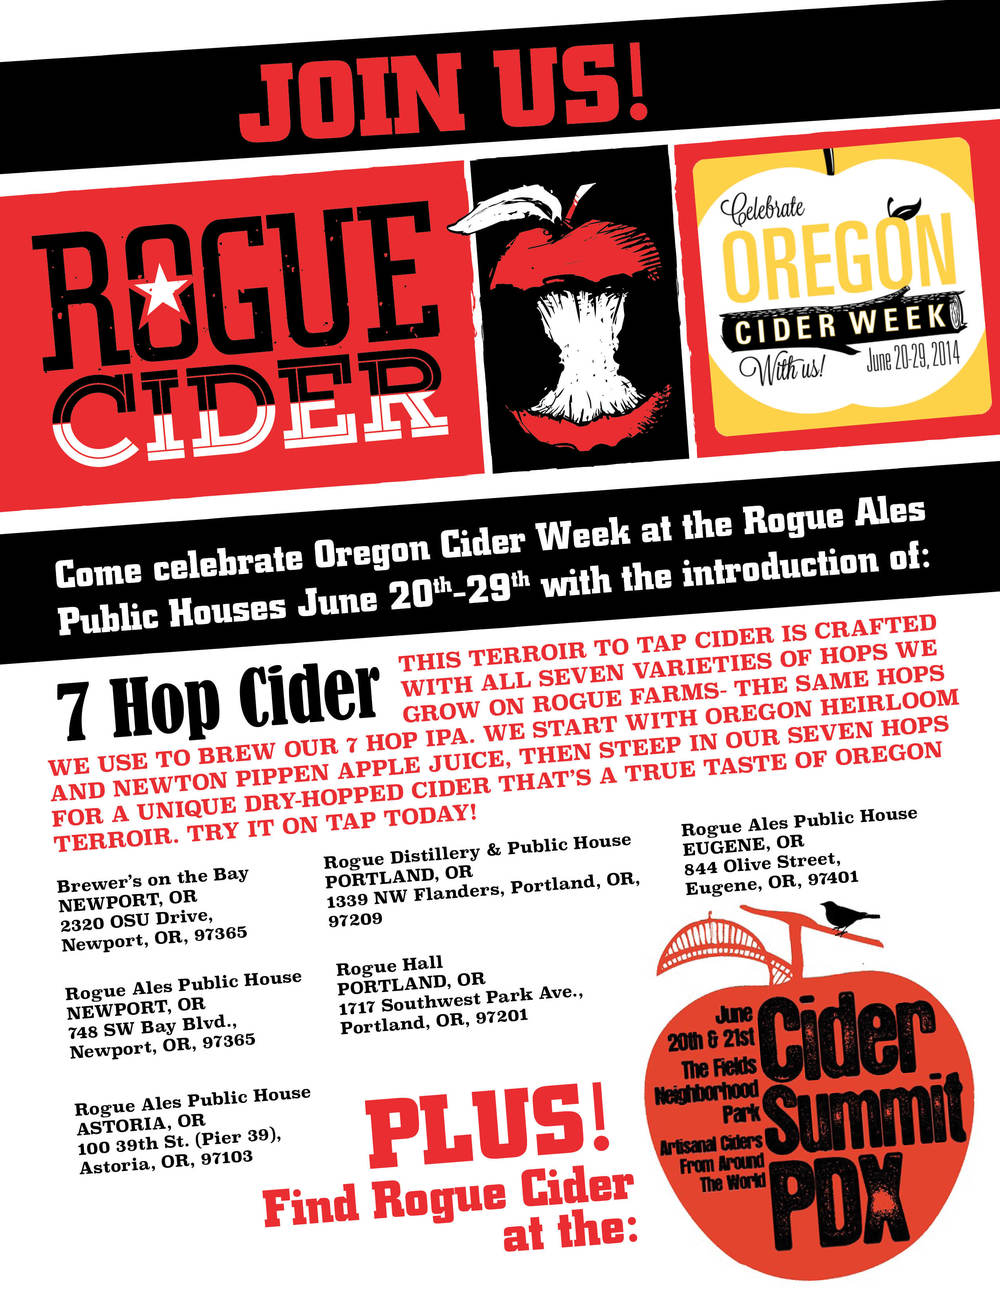 Rogue-Oregon Cider Week Flyer.jpg